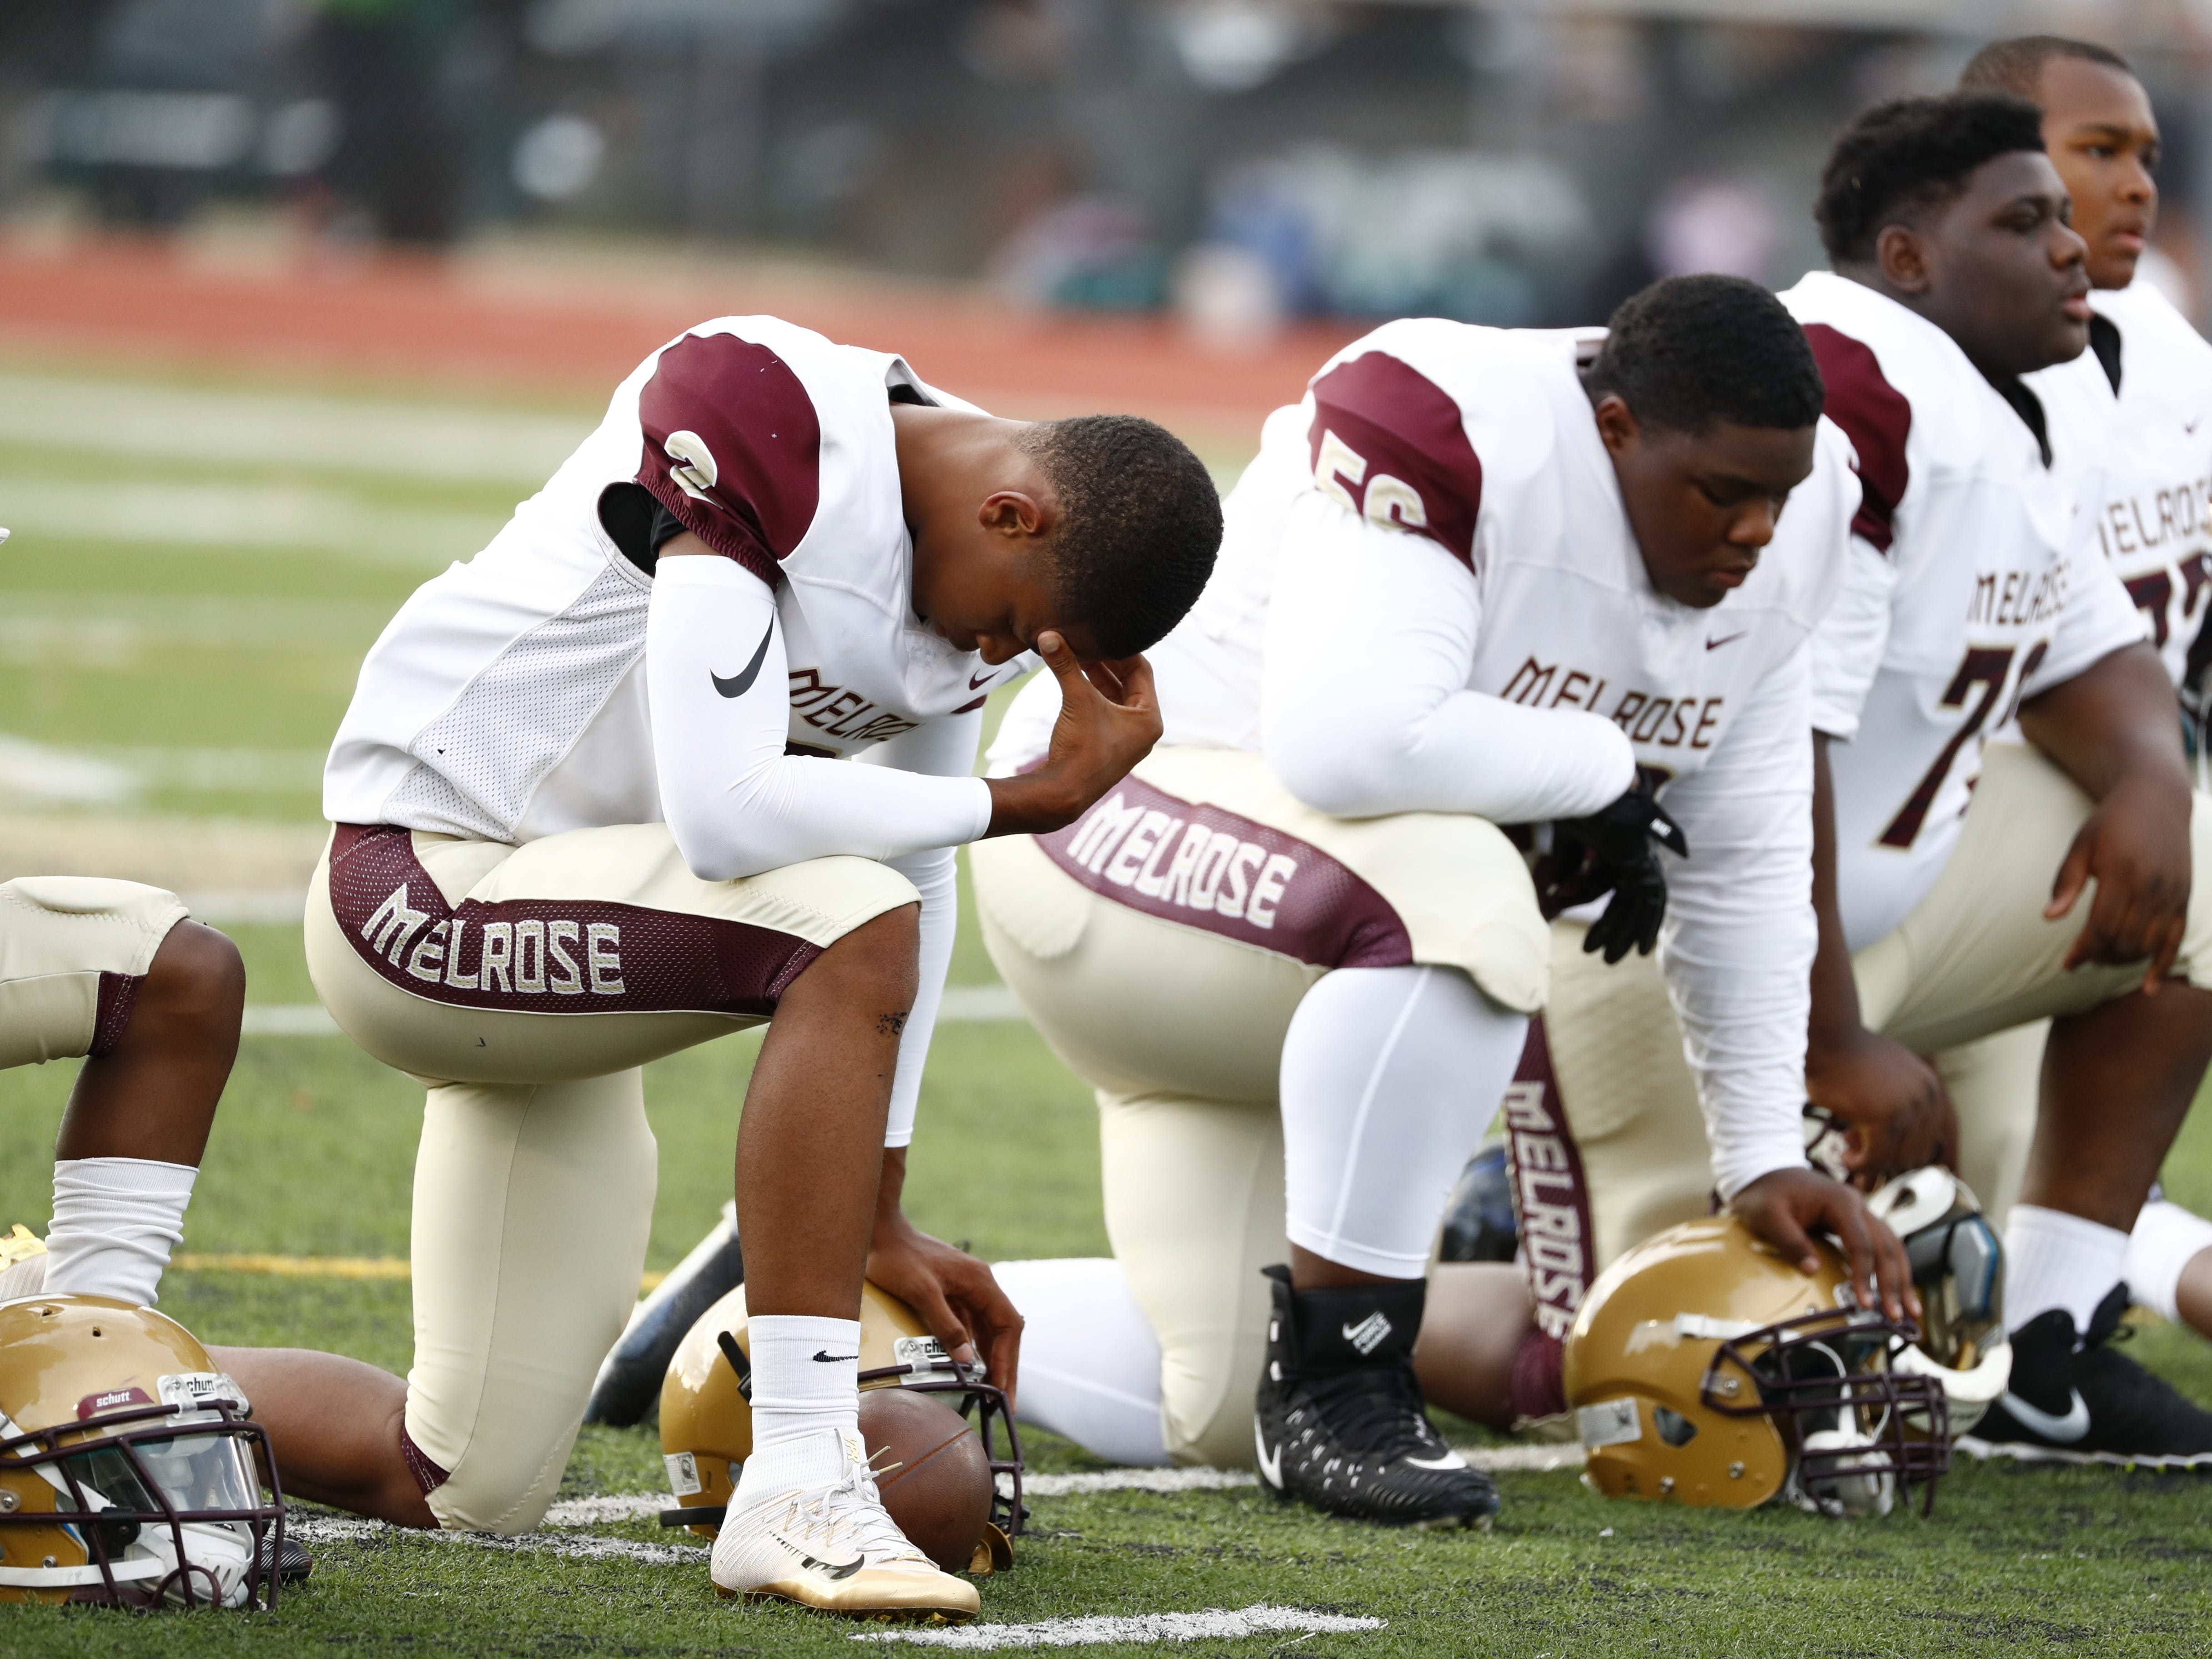 Melrose's William Mason, left, prays prior to Friday's season-opening football game at Central on Aug. 17, 2018.